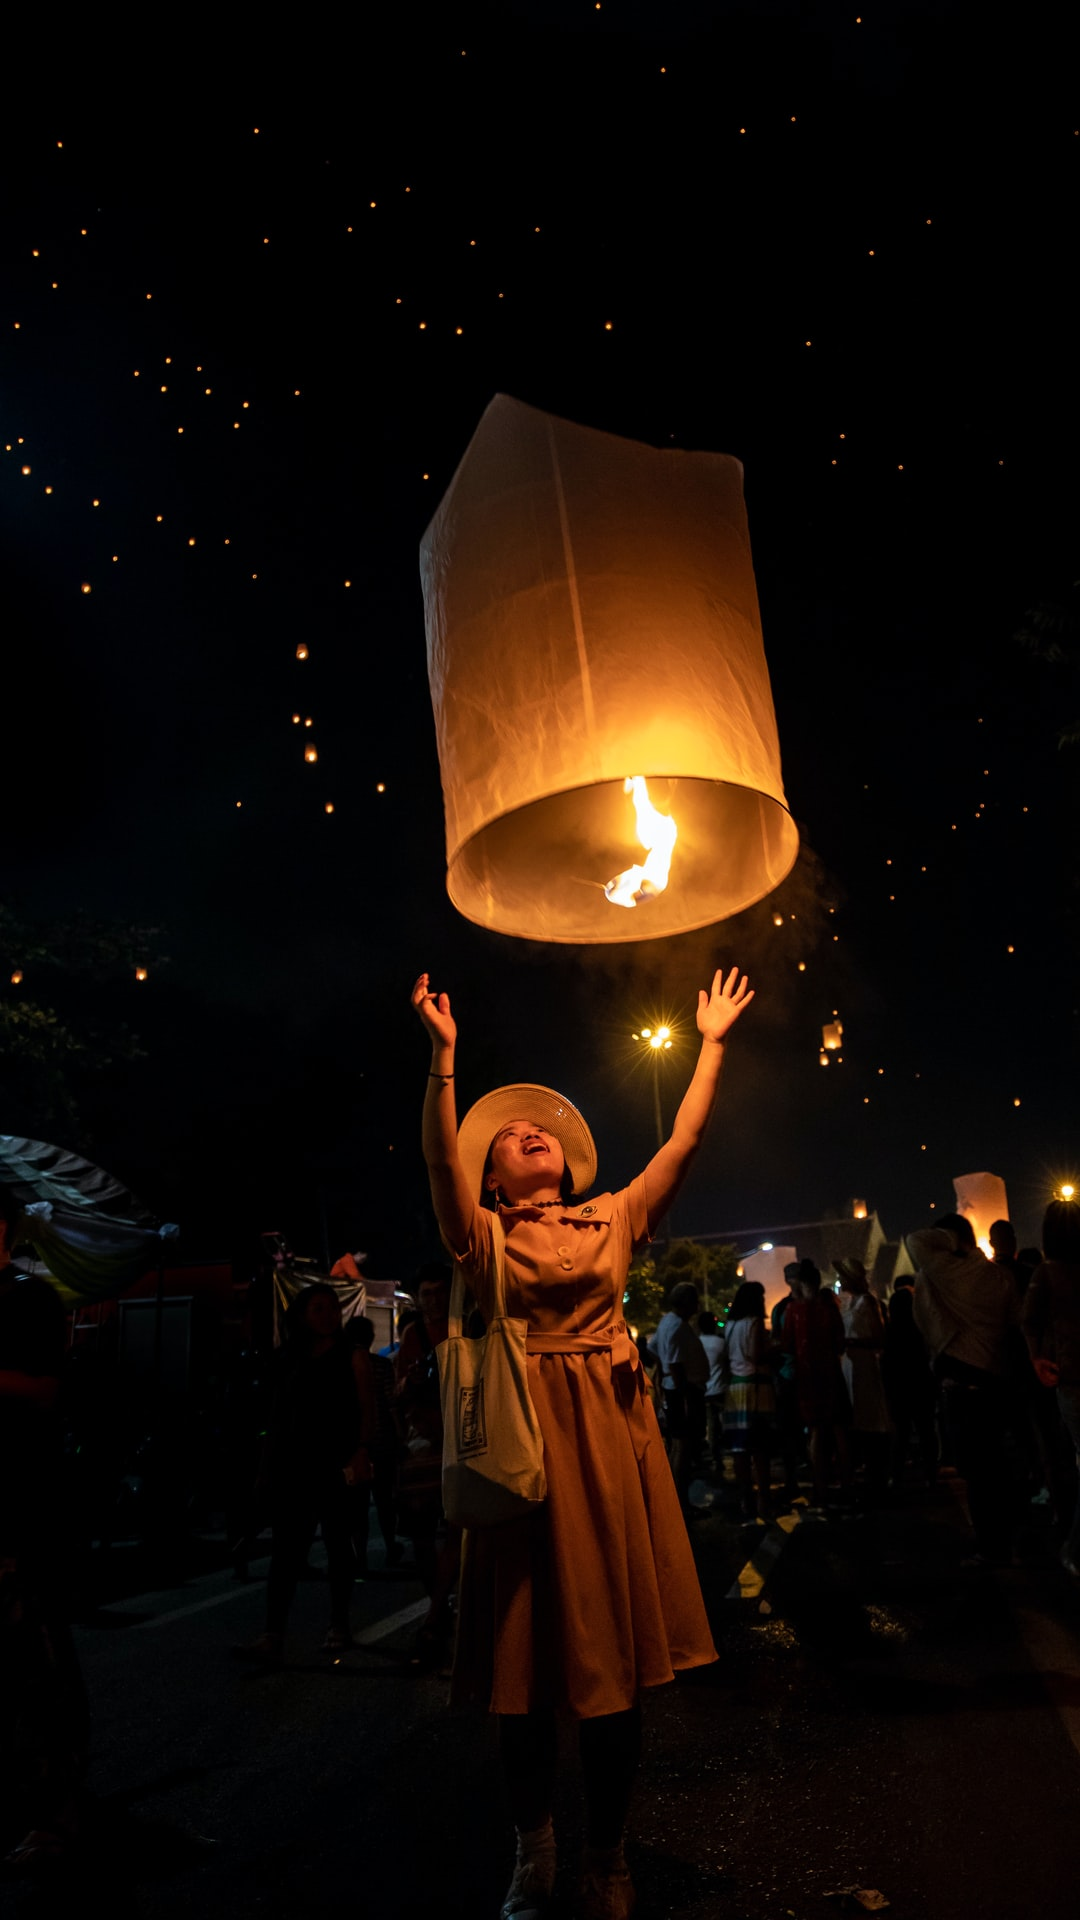 During Loi Krathong the Festival of Lights in Chiang Mai I saw this Chinese girl (Ji Jing) suited in her skirt and wearing a hat releasing her lantern and took the chance to take the photo.